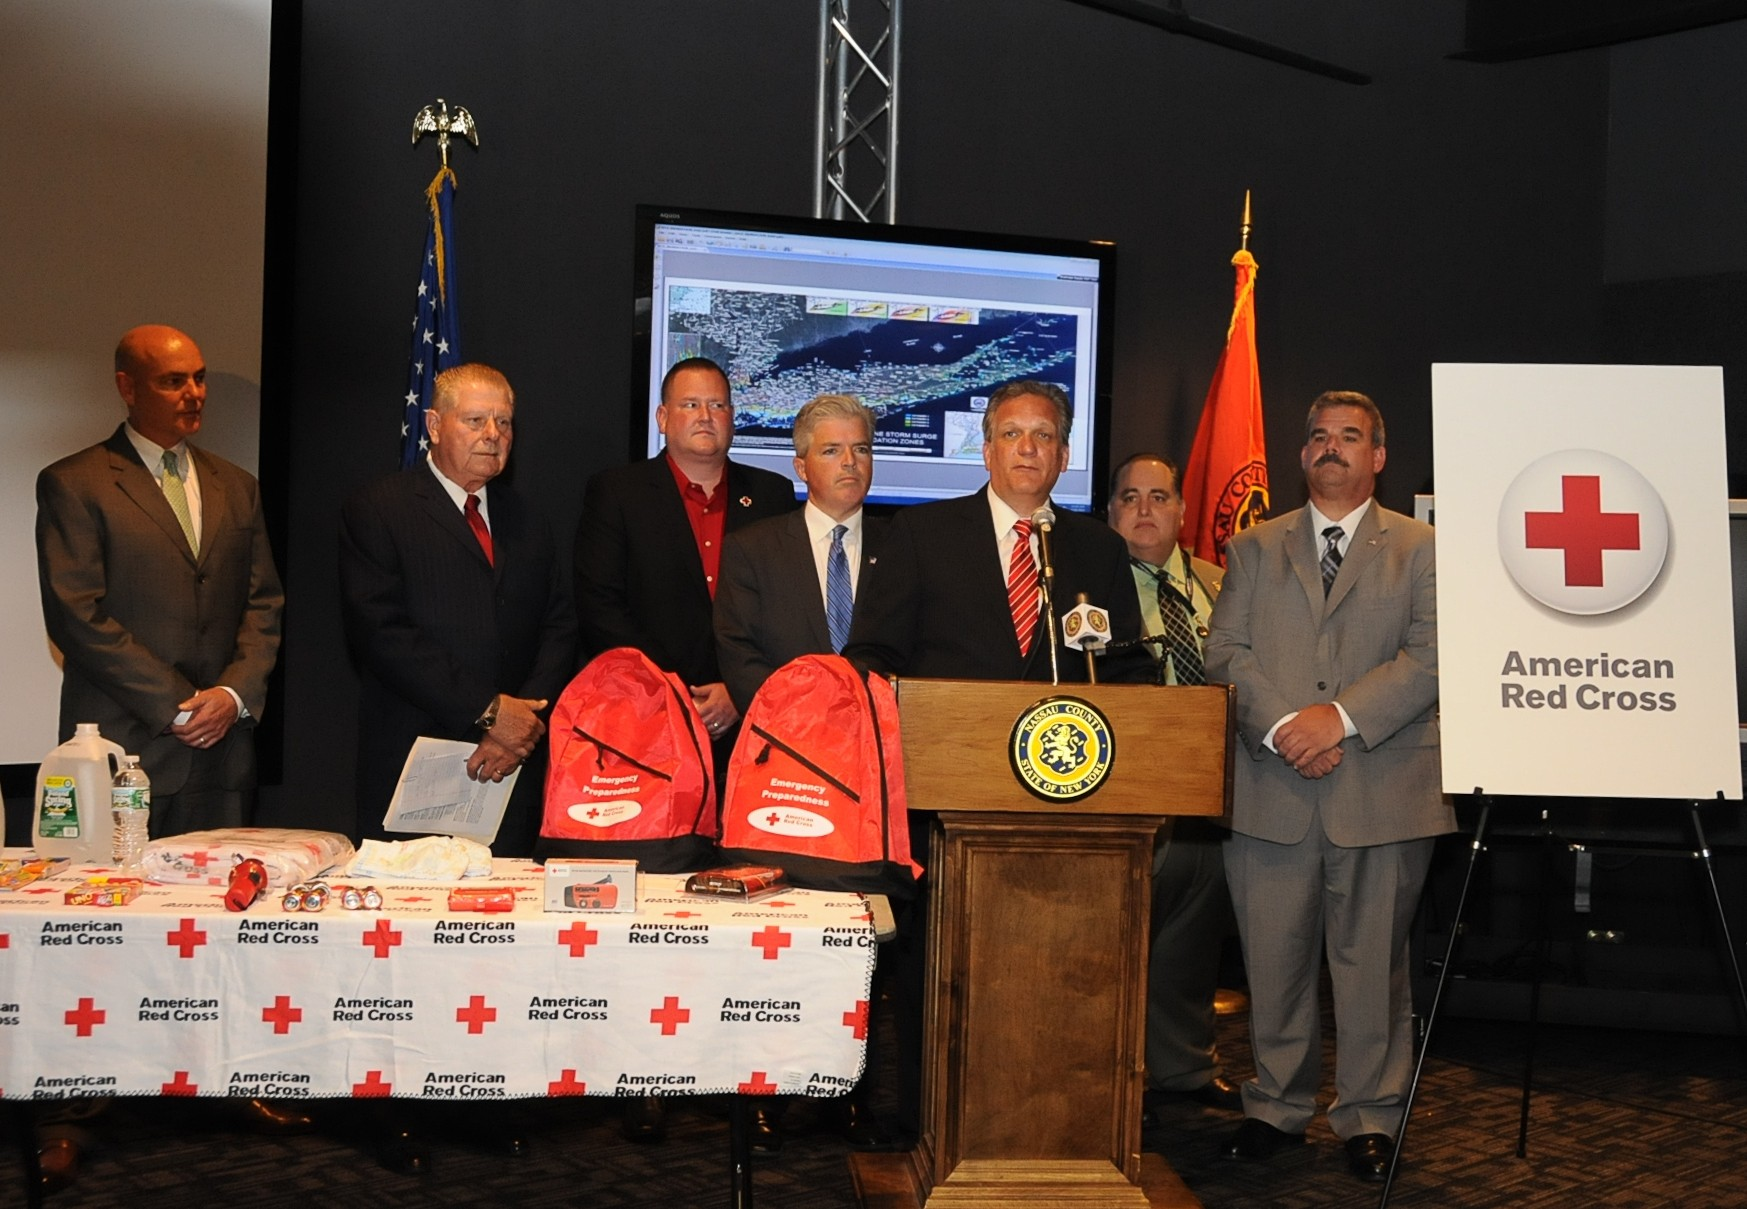 Nassau and Suffolk county officials gathered with leaders of the American Red Cross on Long Island last Friday in Bethpage to urge residents to prepare now for future severe storms. From left to right were Chris Kutner, co-chairman of the American Red Cross on Long Island's Board of Directors; Joe Williams, commissioner of the Suffolk County Department of Fire, Rescue and Emergency Services; John Miller, chief executive officer of the American Red Cross on Long Island; Steve Bellone, Suffolk County executive; Ed Mangano, Nassau County executive; Craig Craft, commissioner of the Nassau County Office of Emergency Management; Scott Tusa, chief fire marshal of Nassau County.